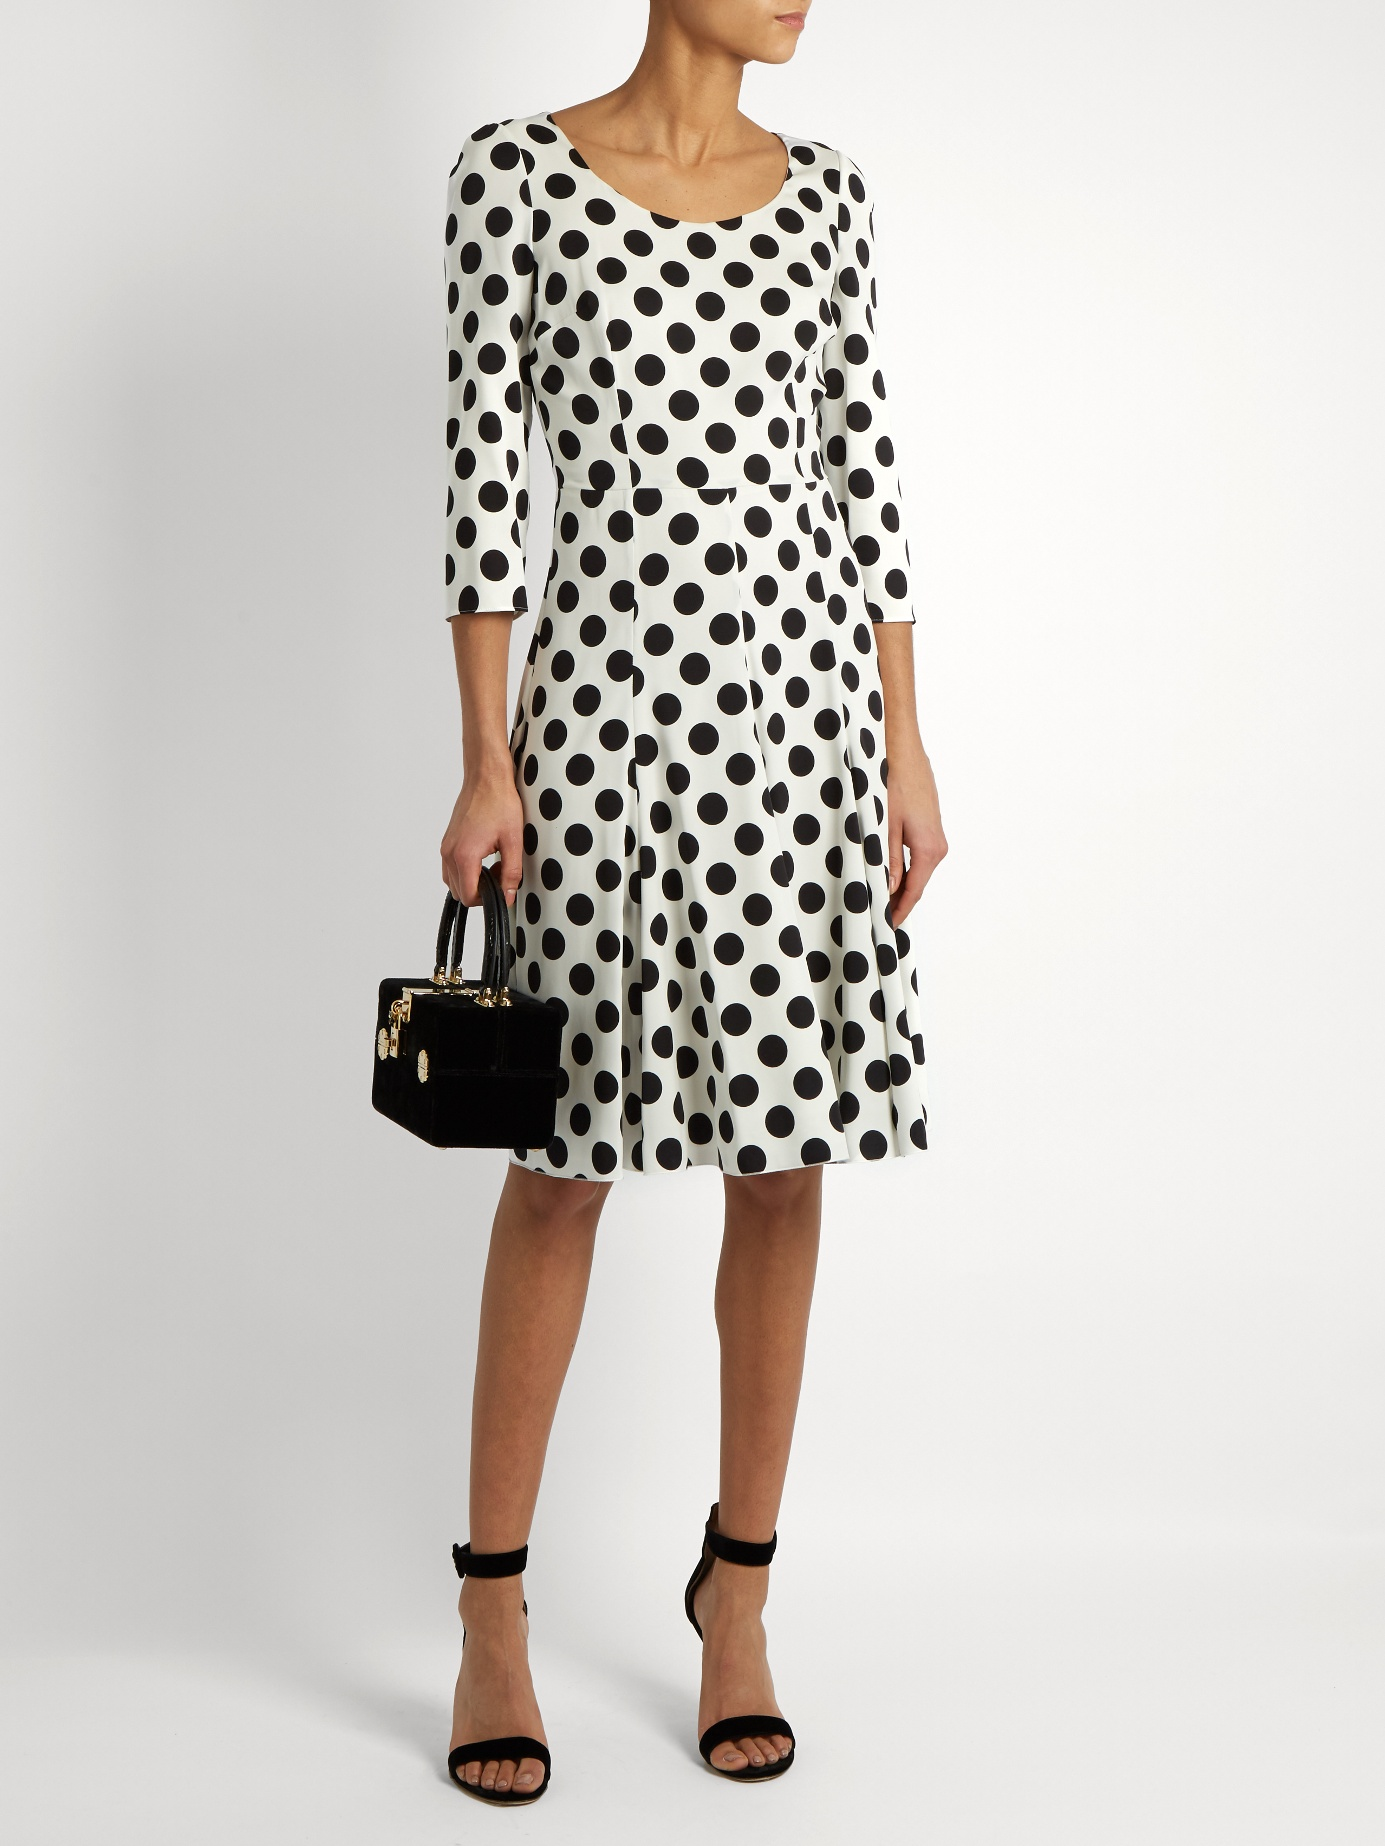 How to Match a Polka Dot Dress